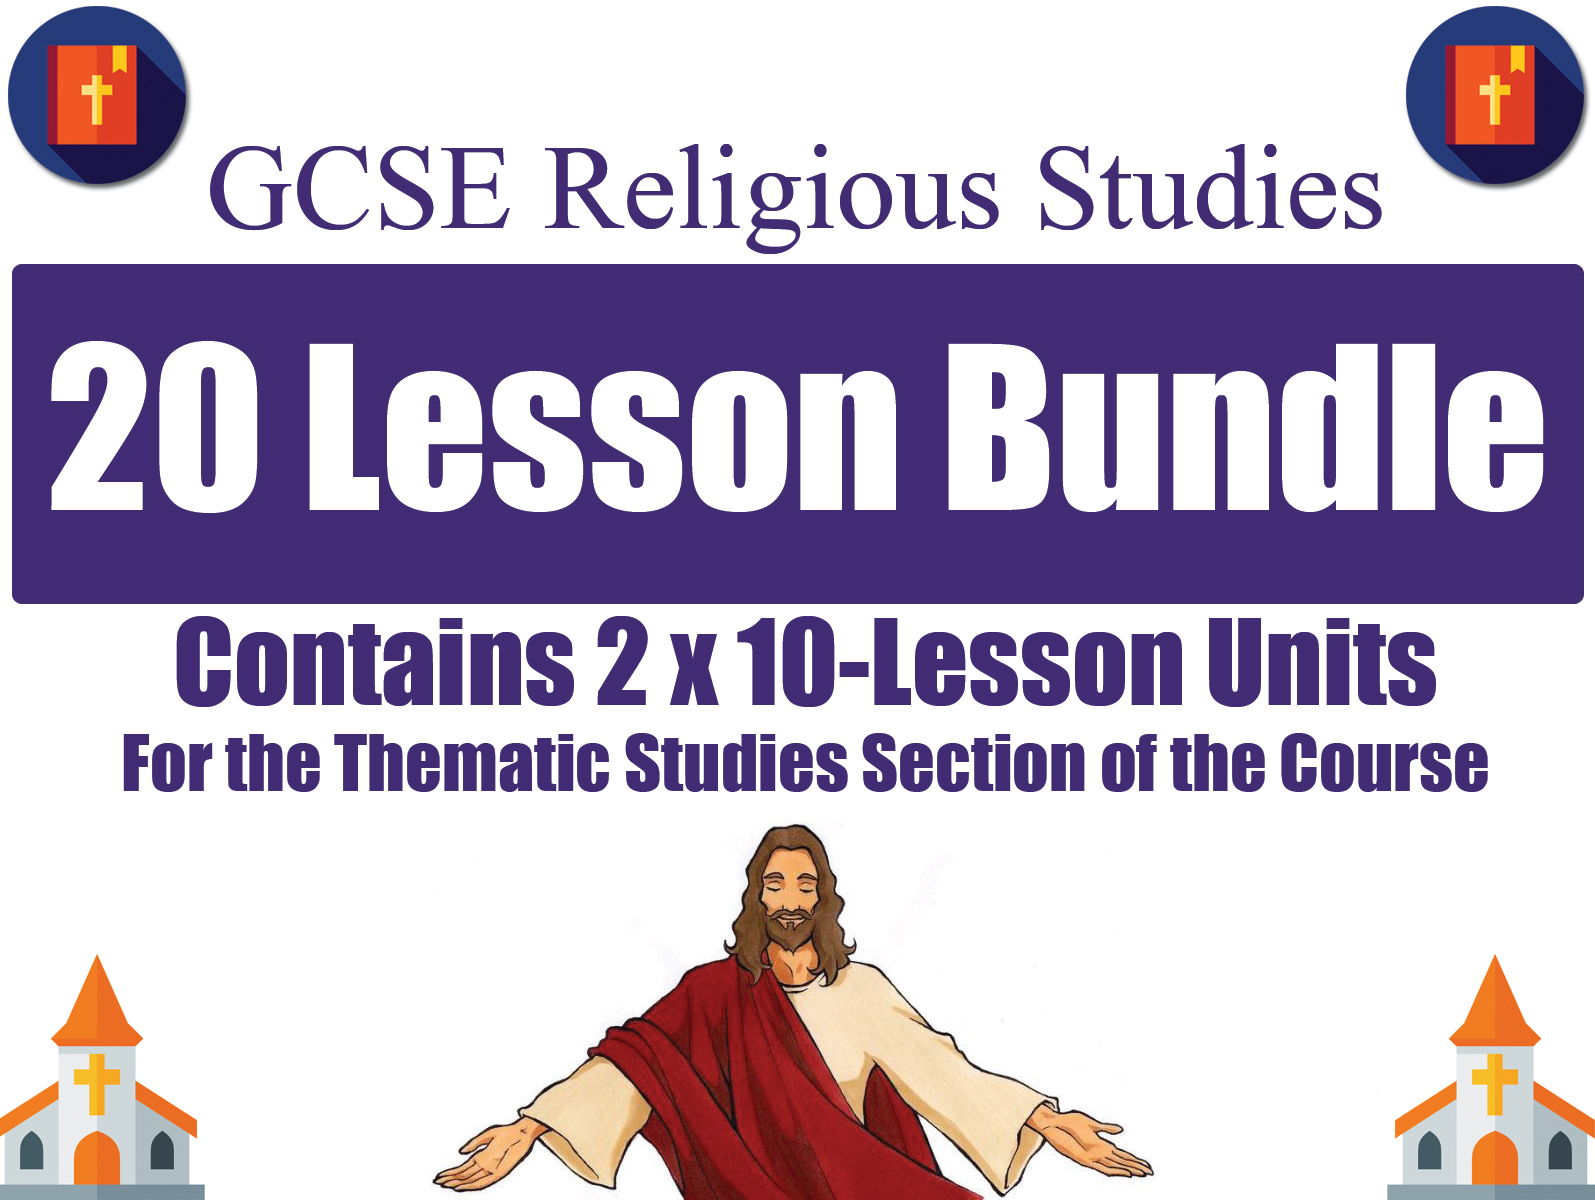 'Relationships & Families' + 'Religion & Life' (20 Lessons) [GCSE RS - AQA]